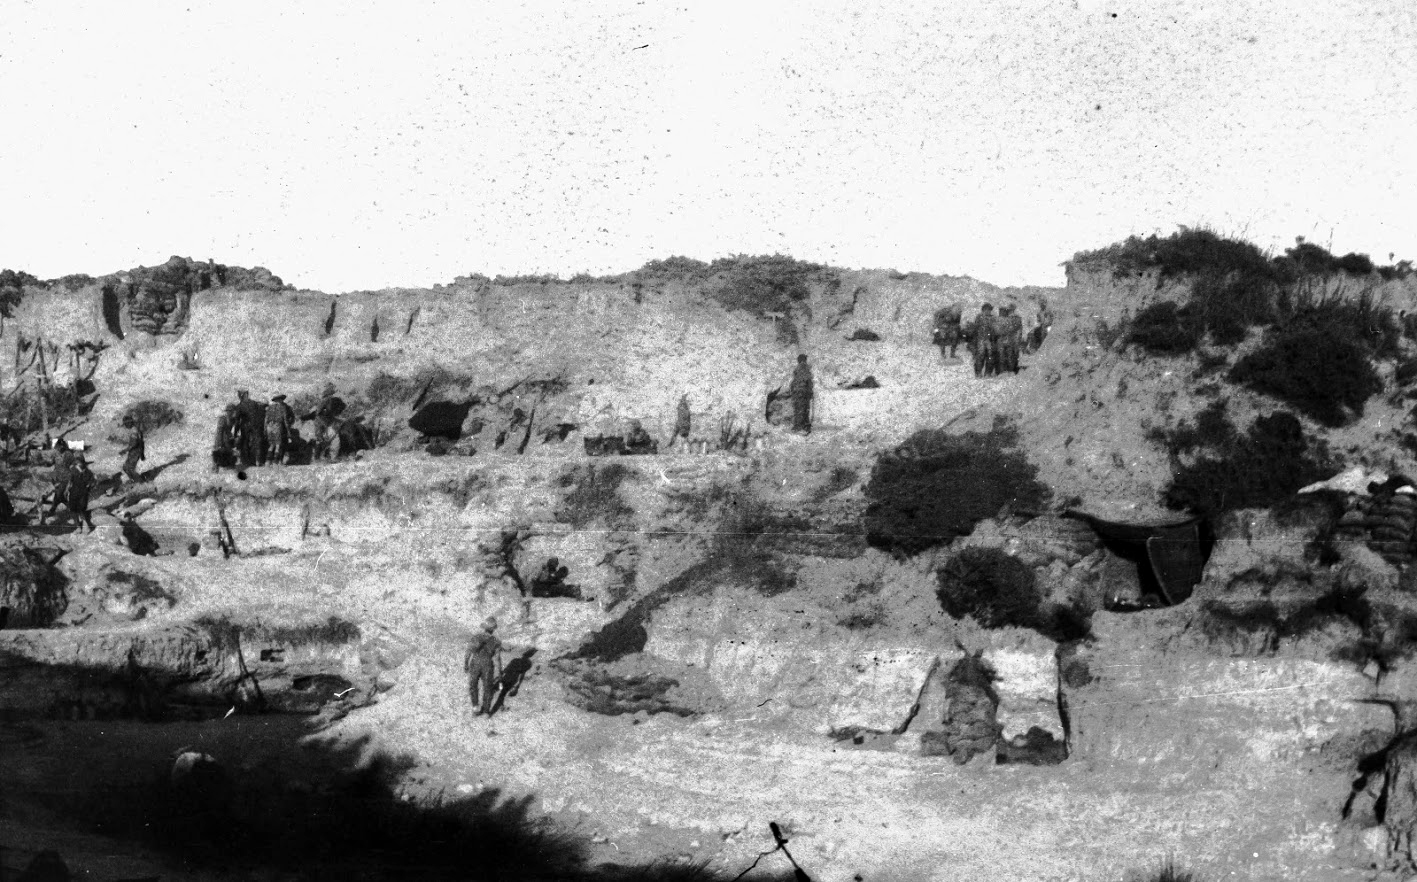 Soldiers Encamped At The Head Of Krithia Nullah On The Gallipoli Peninsula c.1915